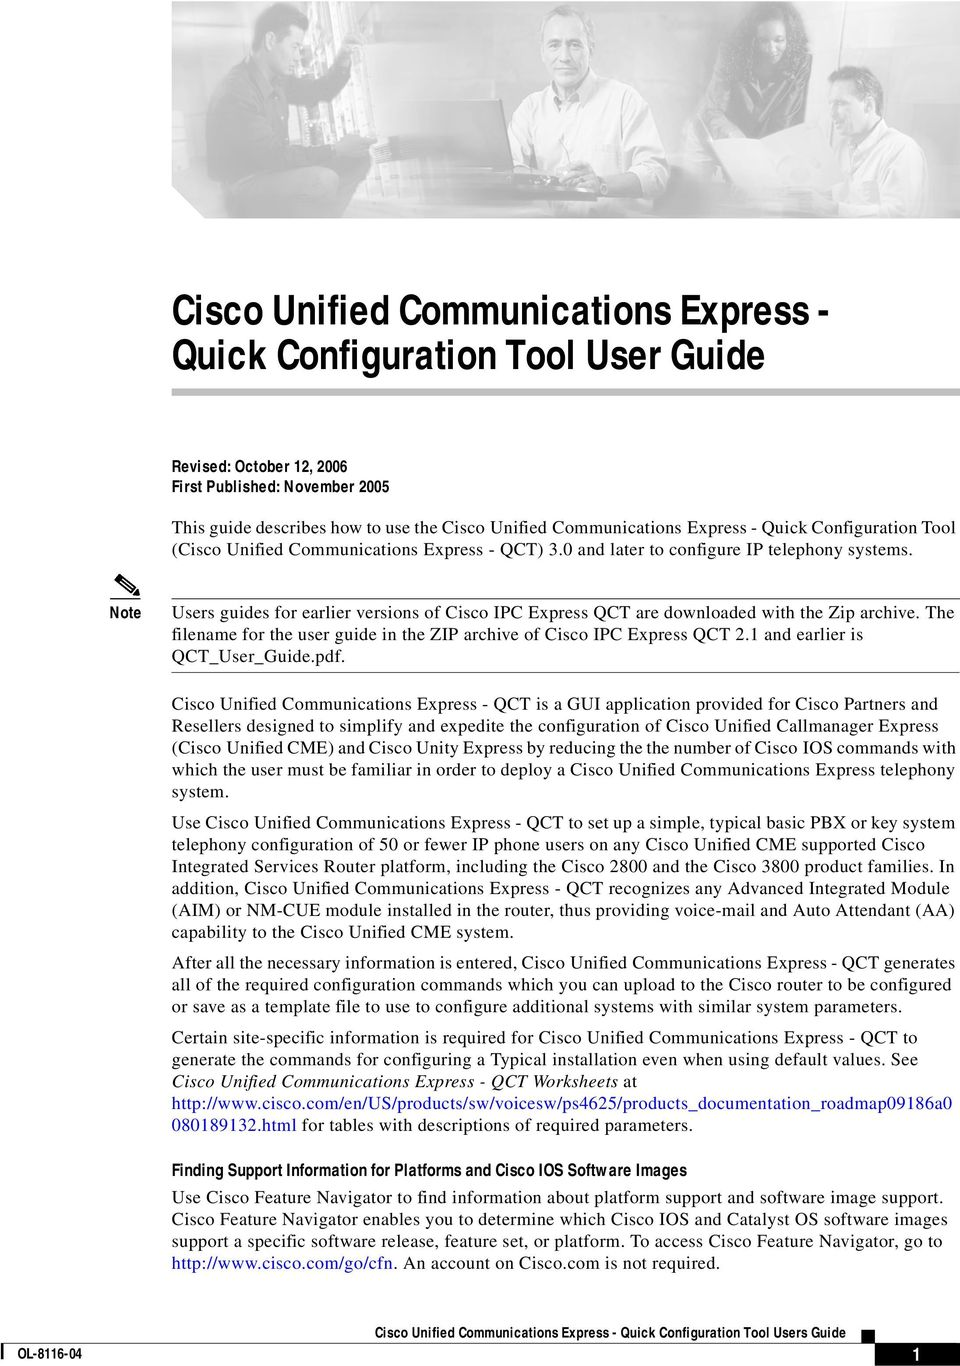 Note Users guides for earlier versions of Cisco IPC Express QCT are downloaded with the Zip archive. The filename for the user guide in the ZIP archive of Cisco IPC Express QCT 2.